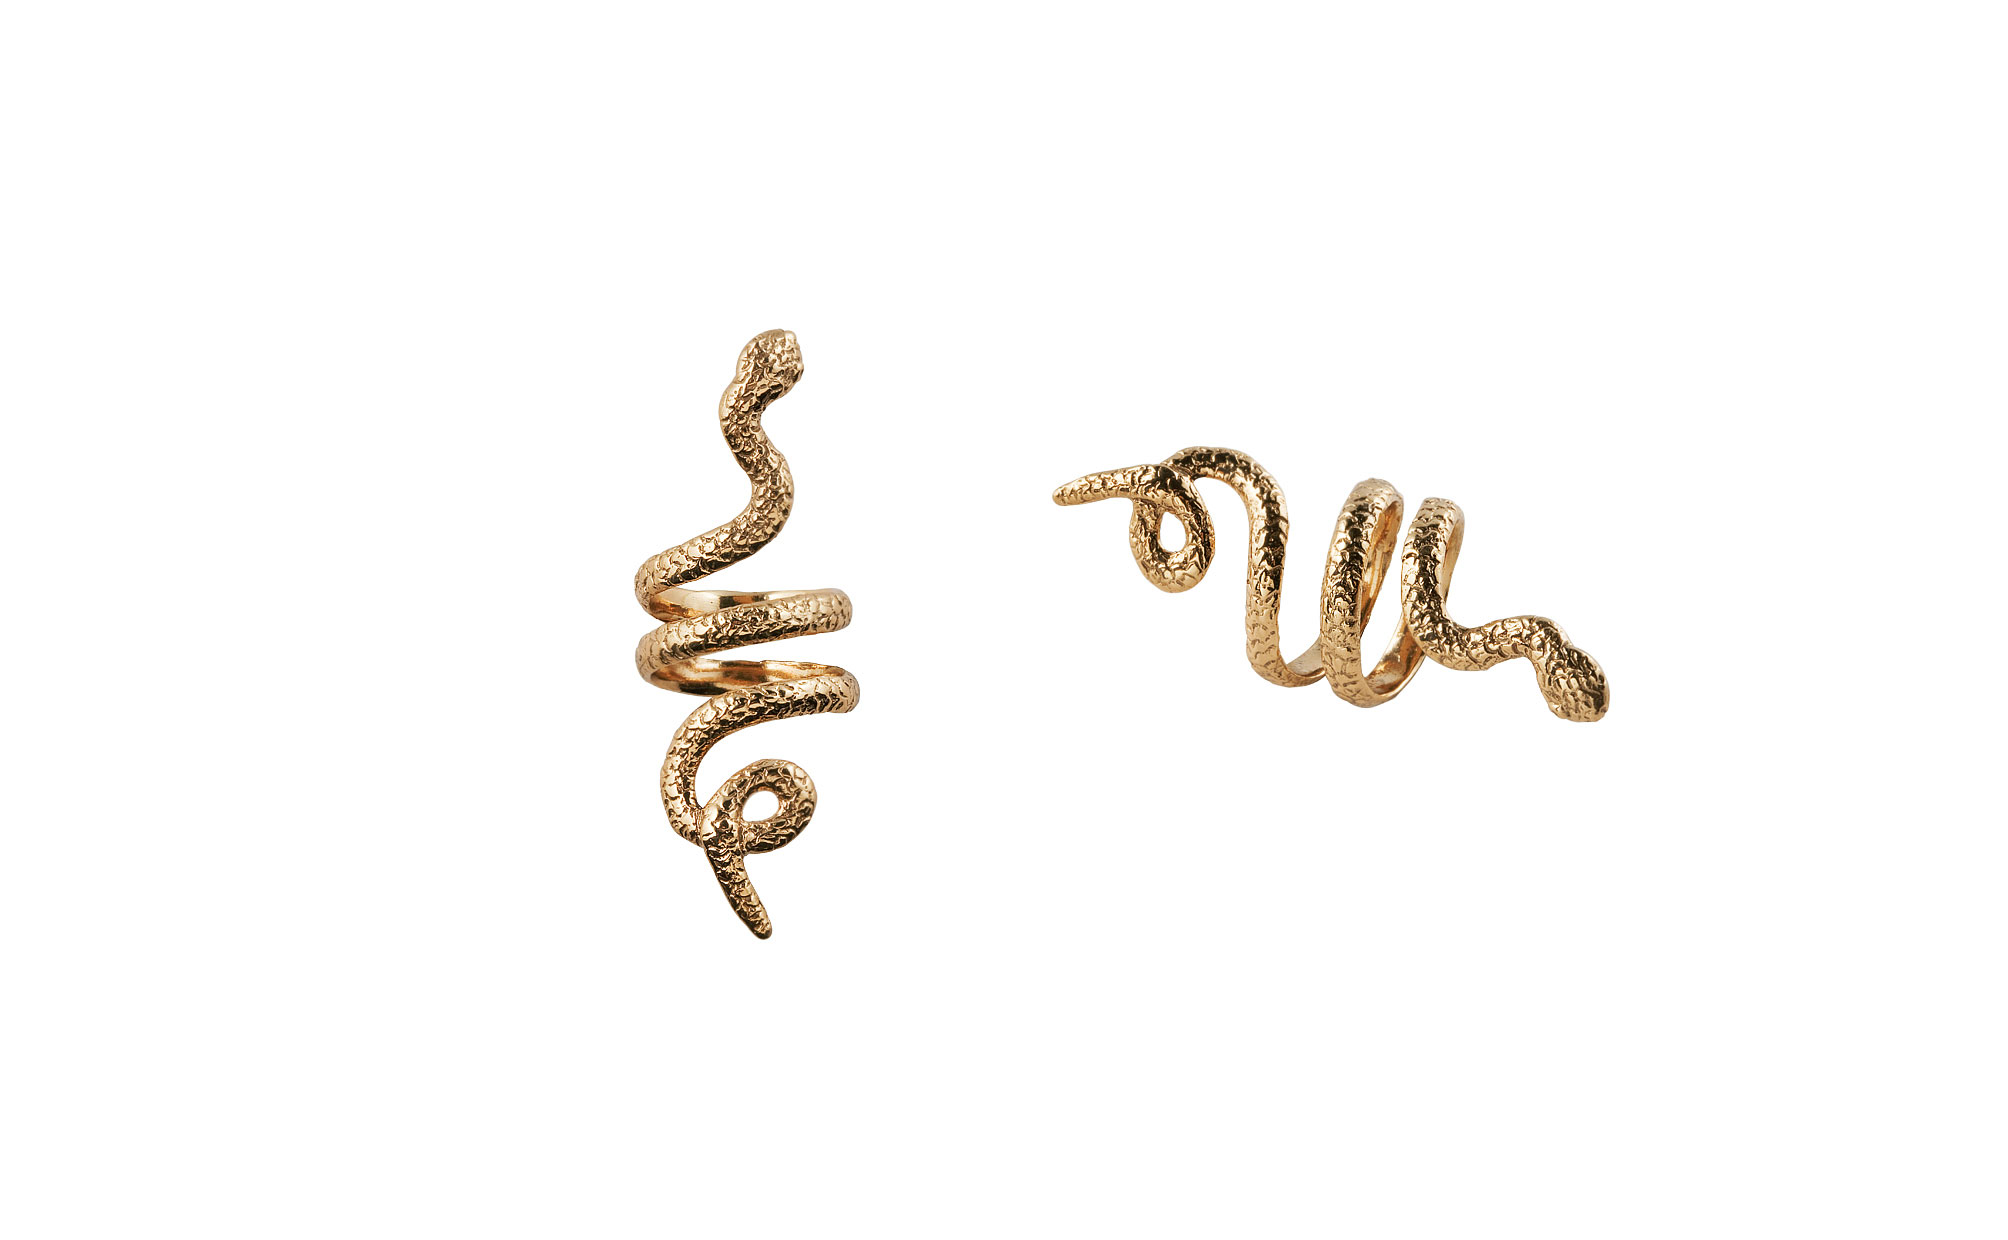 Bronze coiled snake ring